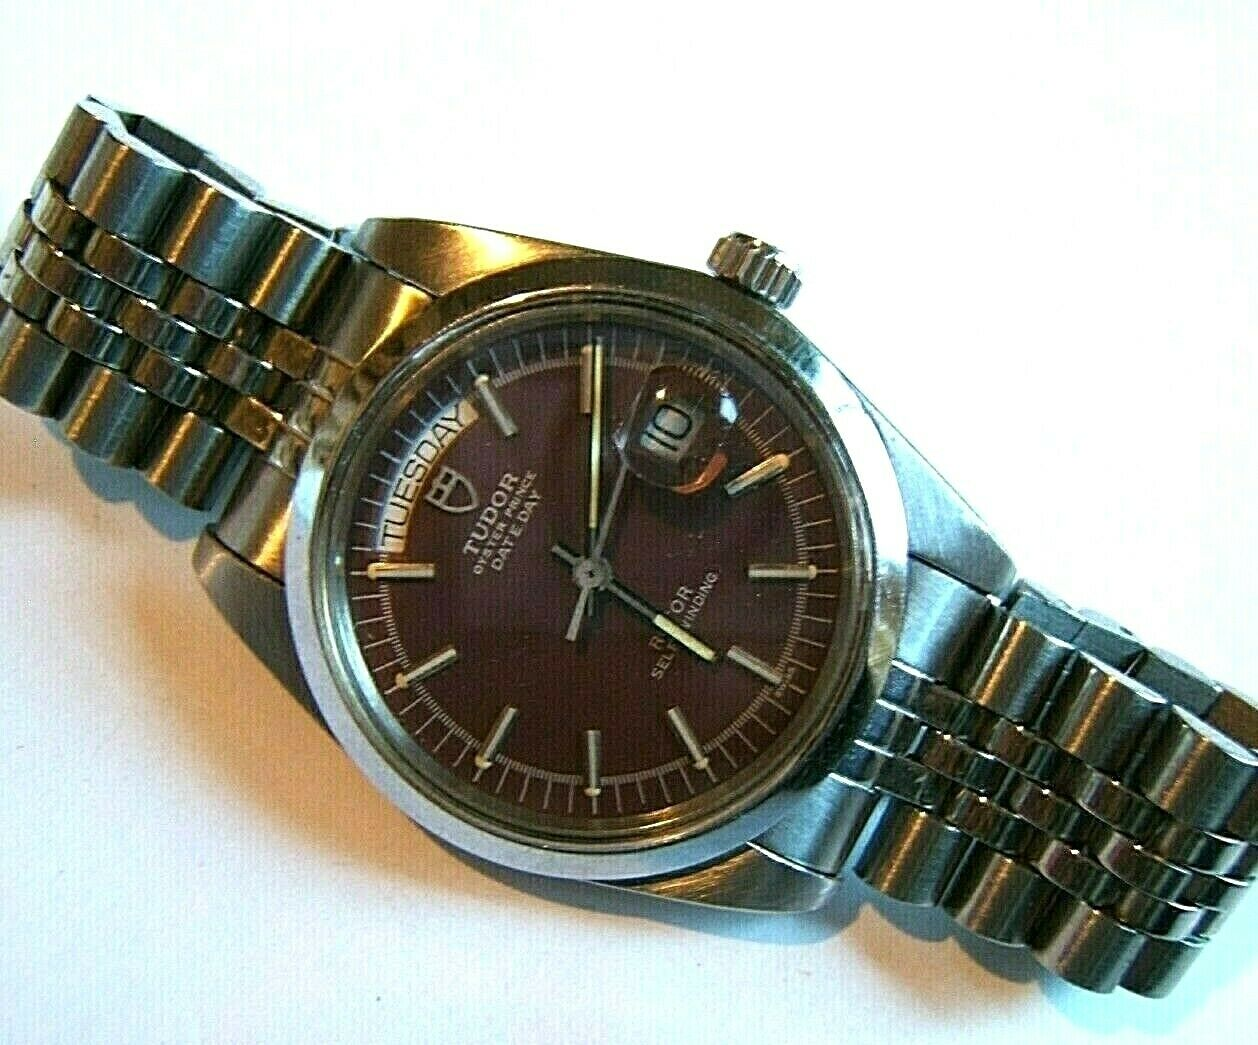 VTG 1971 ROLEX TUDOR PRINCE DATE DAY AUTOMATIC 9450/0 JUMBO 38MM AUTOMATIC W BOX - watch picture 1